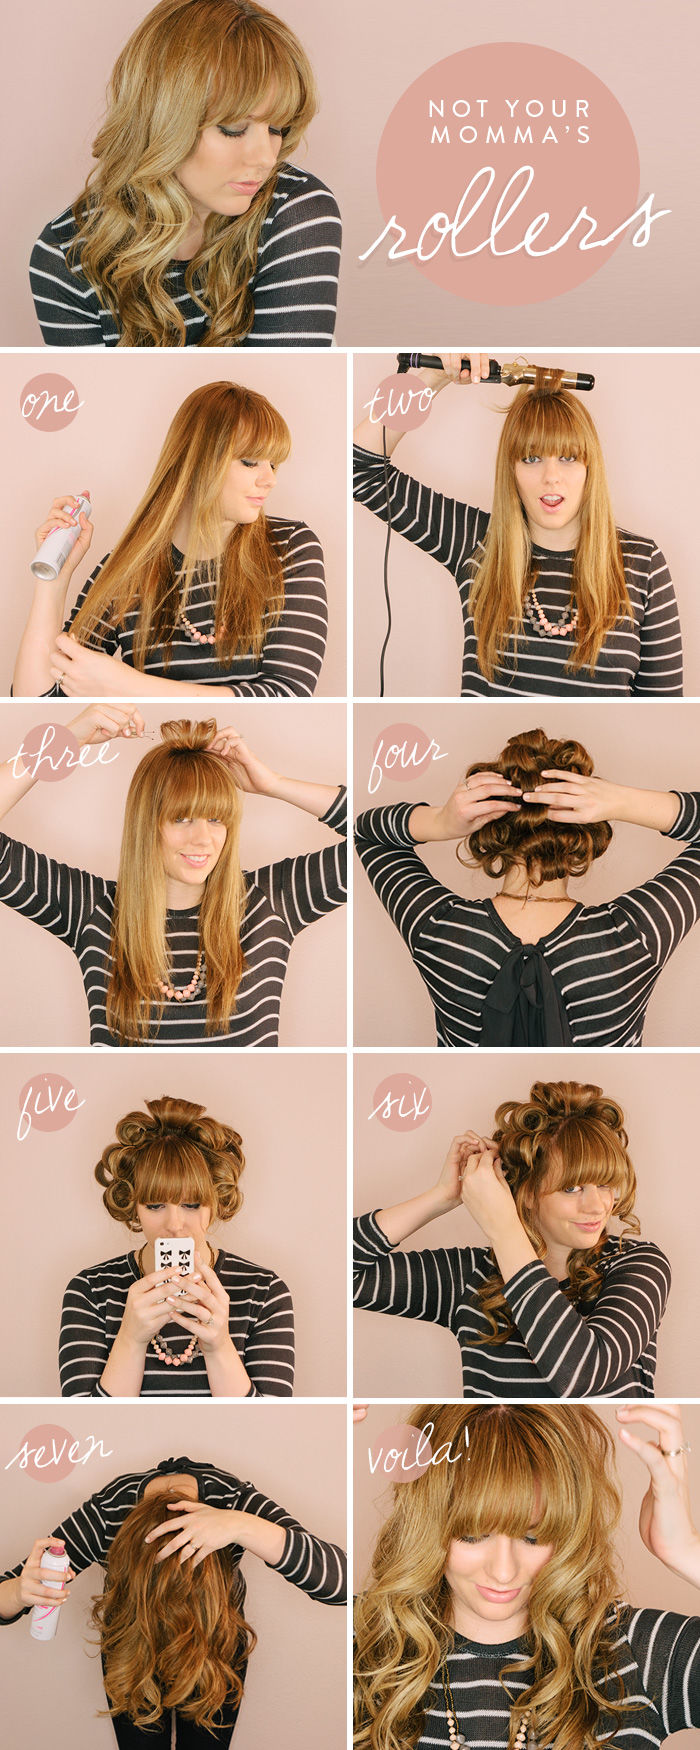 DIY Curly Hair Pictures, Photos, and Images for Facebook, Tumblr, Pinterest, and Twitter